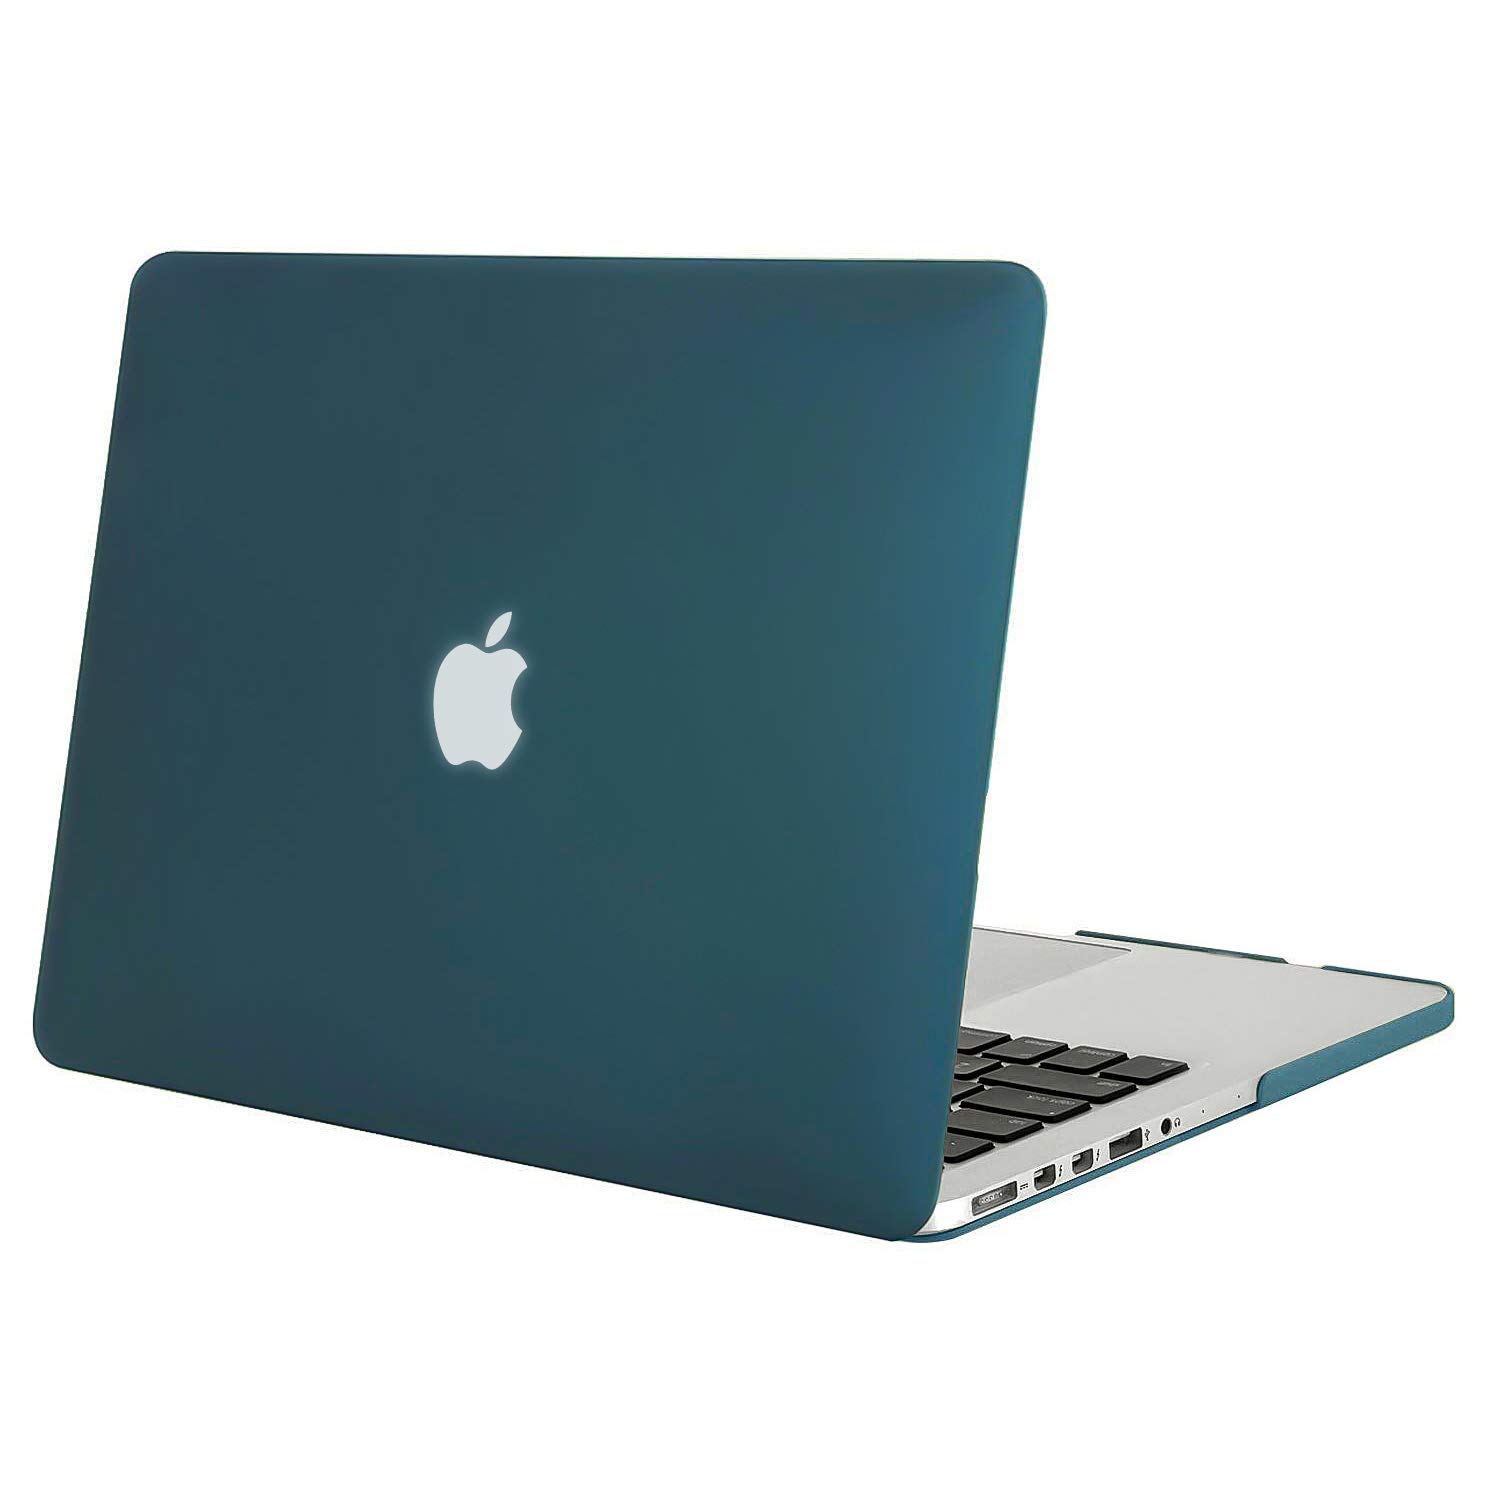 No Touch Bar Model: A1398, Version mid 2015//2014//2013//mid 2012 Retina 15 Inch No CD-Rom Deep Teal MOSISO Plastic Hard Shell Case Snap On Cover Only Compatible MacBook Pro